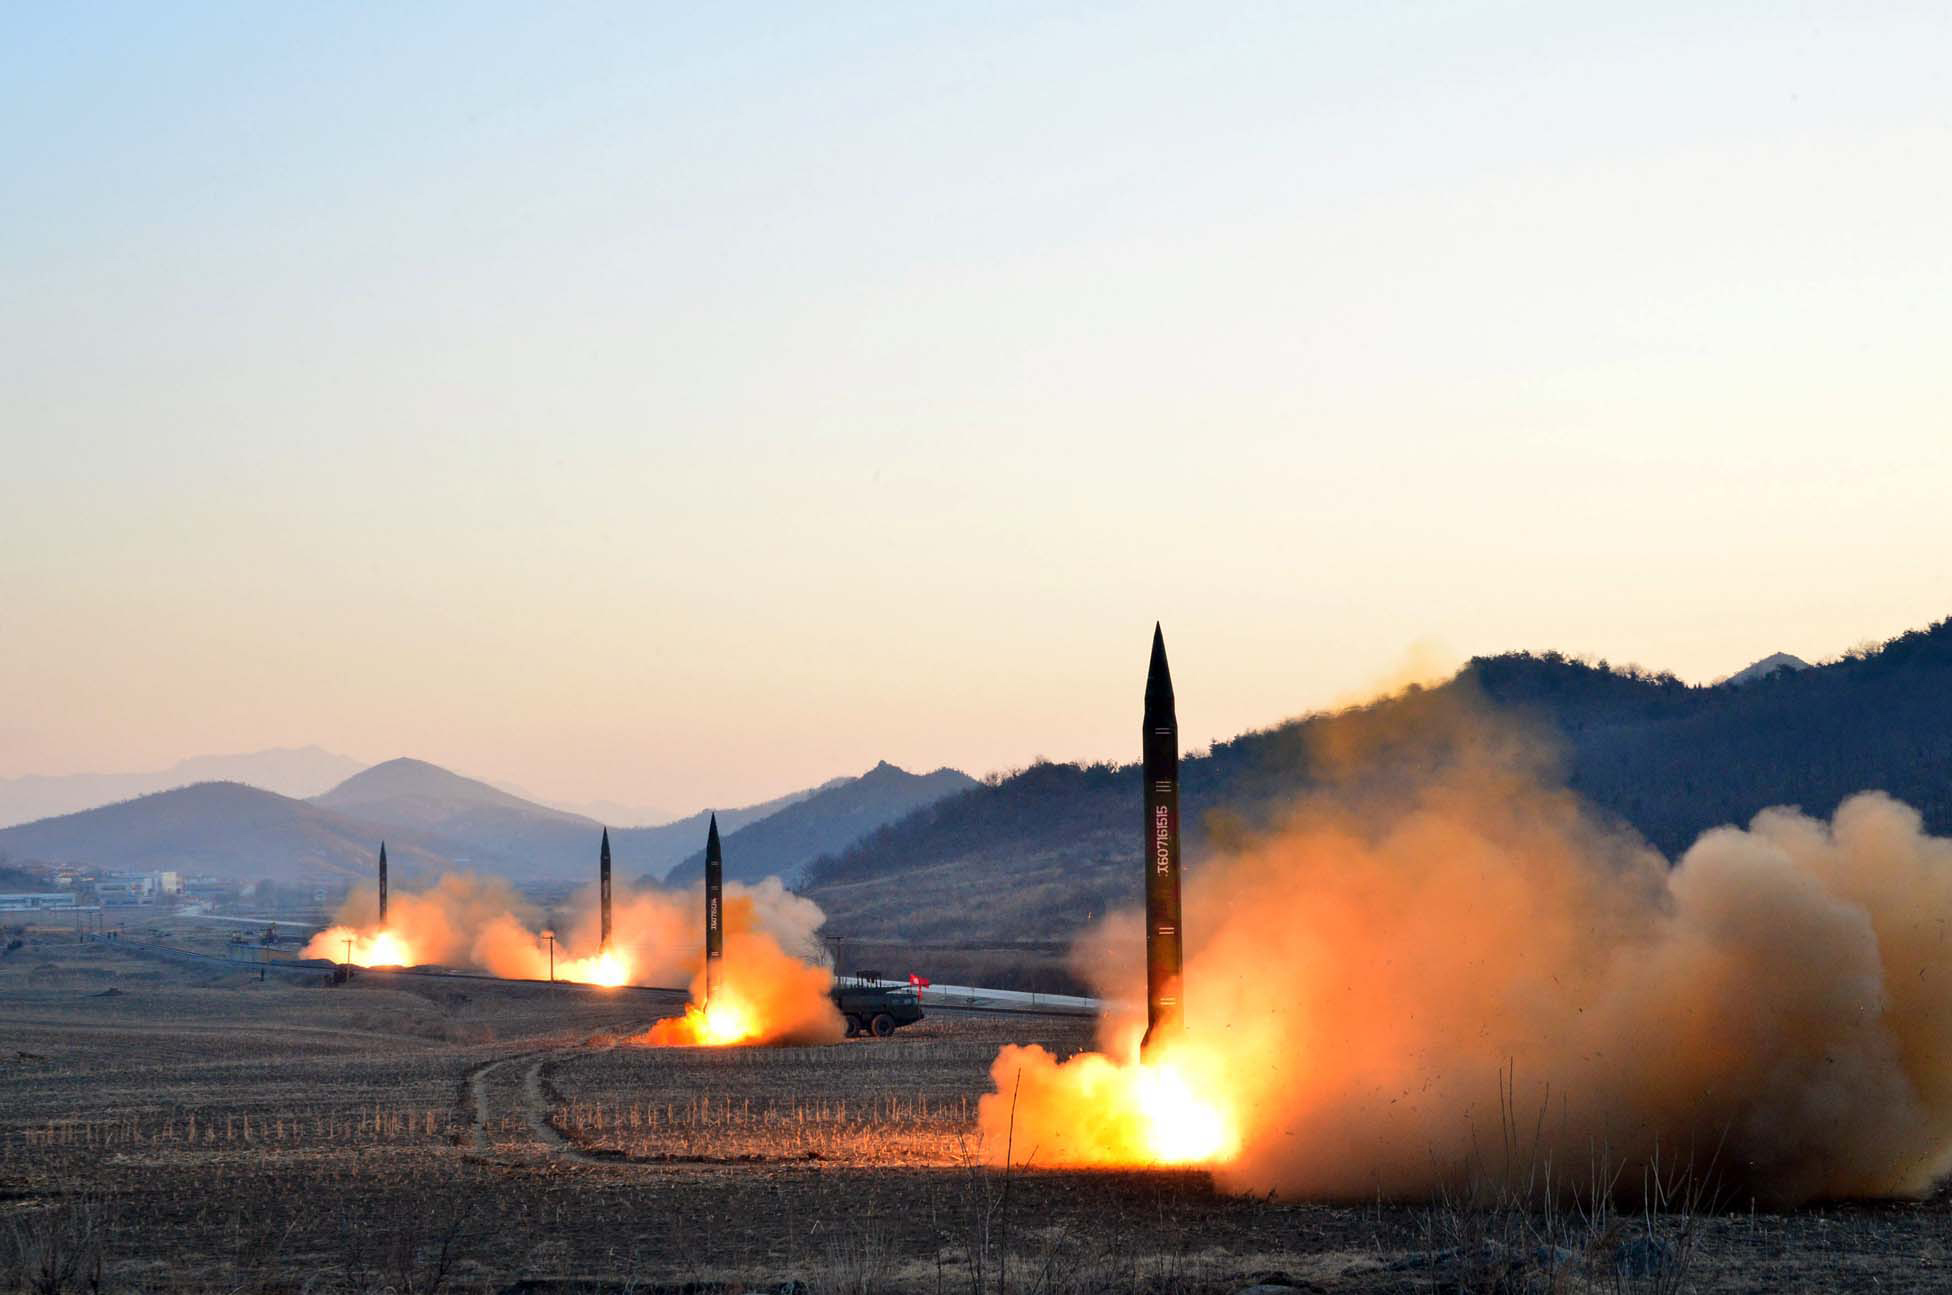 This undated picture released by North Korea's Korean Central News Agency on March 7, 2017 shows the launch of four ballistic missiles at an undisclosed location in North Korea.